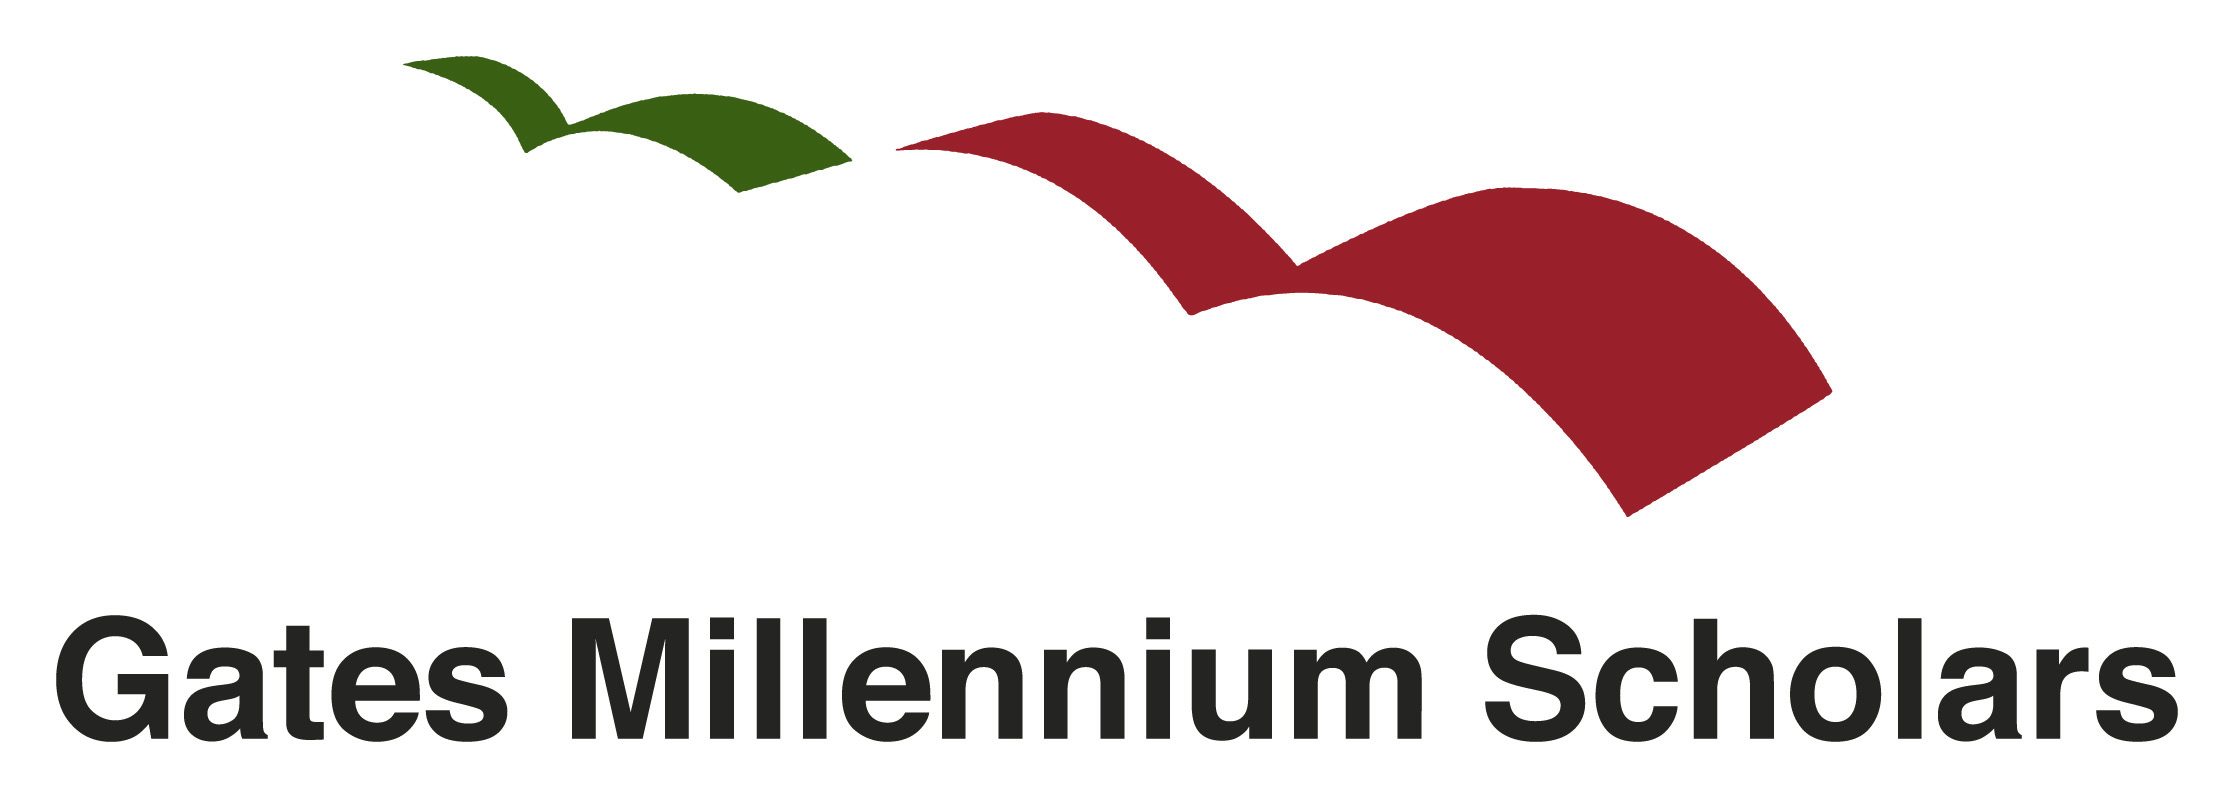 shared online gates millennium scholarship response Name: the gates millennium scholars (gms) program award amount: varies information and eligibility: the gates millennium scholars program provides a good-through-graduation scholarship (full tuition covered) to use at any college or university.